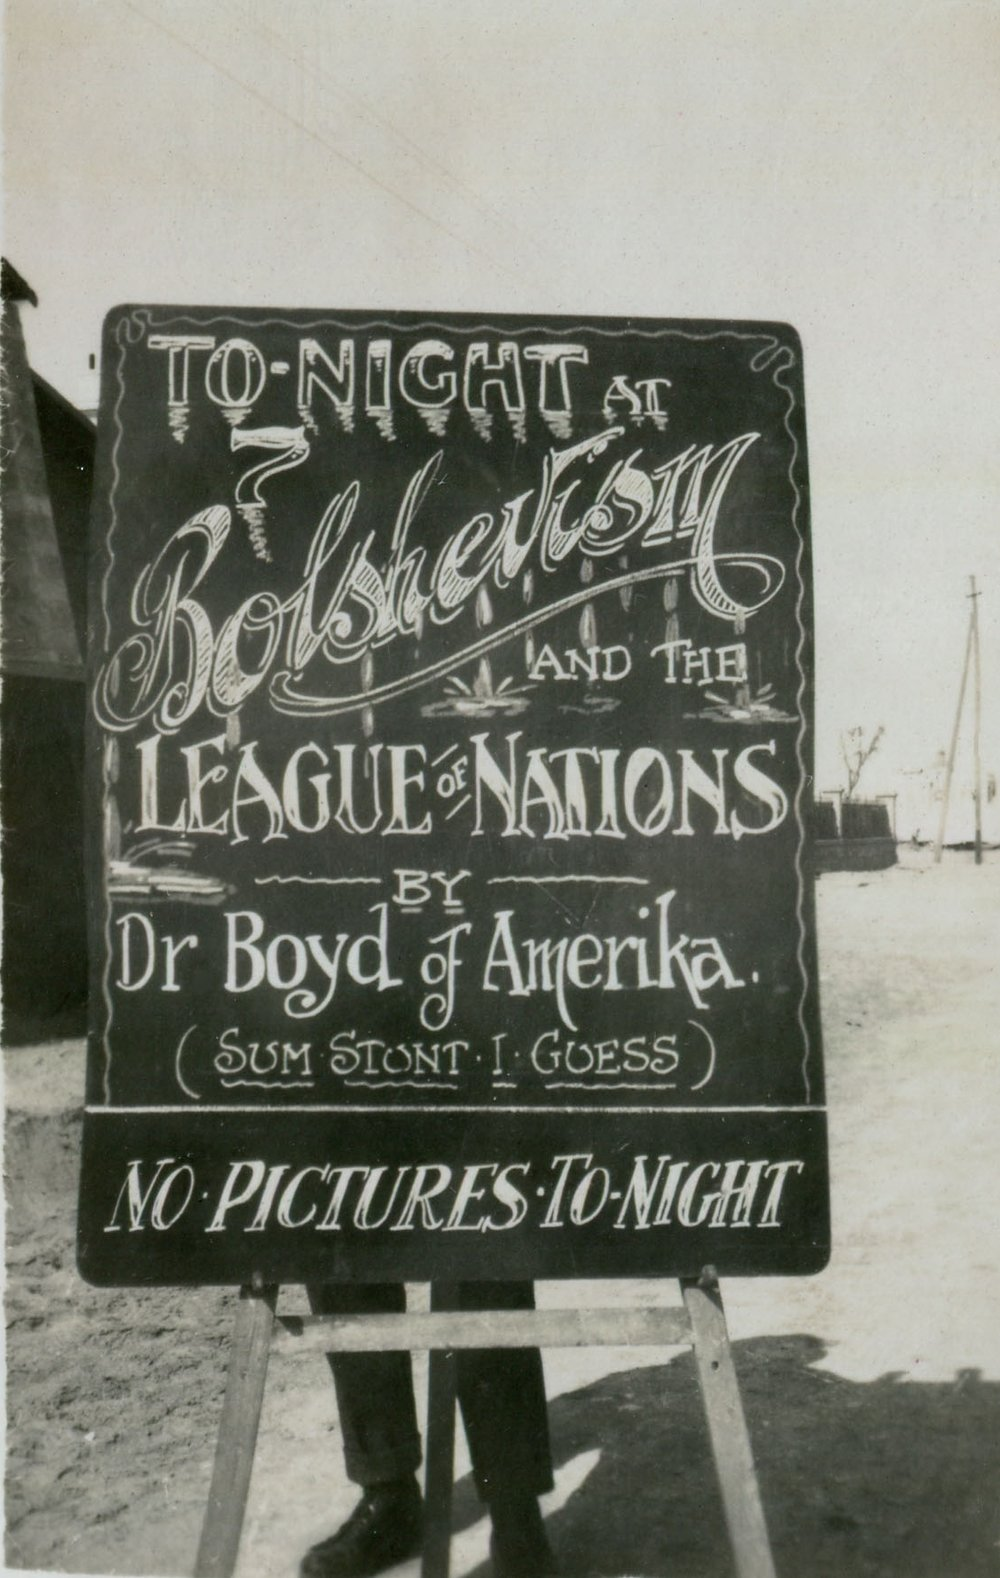 reg walters032 Dr Boyd Bolshevism and the League of Nations.jpg